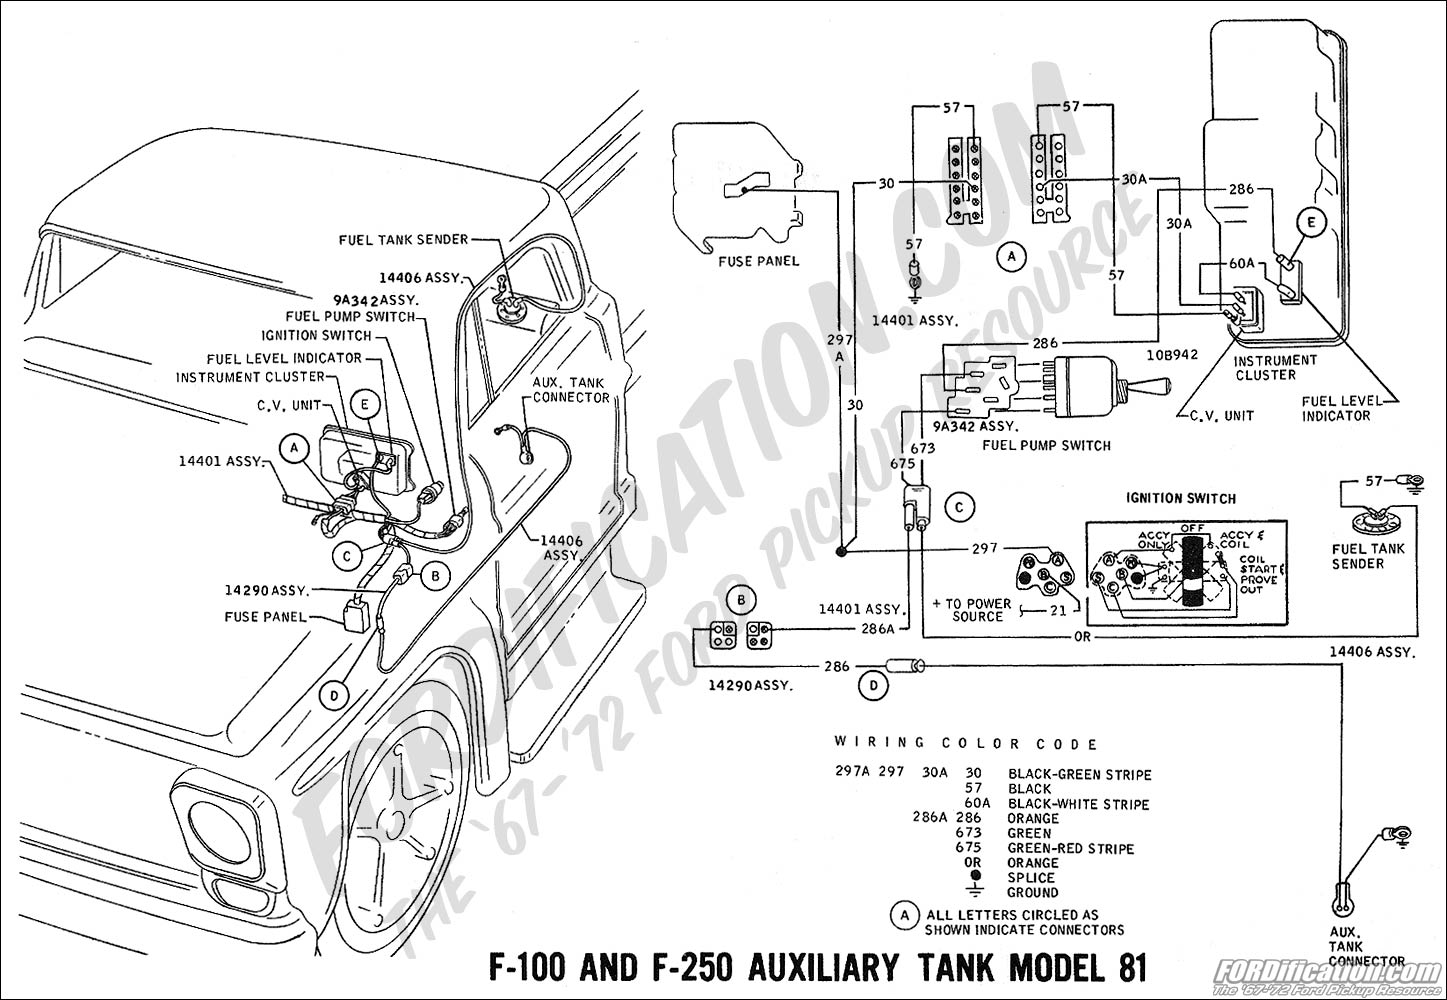 1992 Ford F150 Fuel Pump Wiring Diagram | Wiring Library